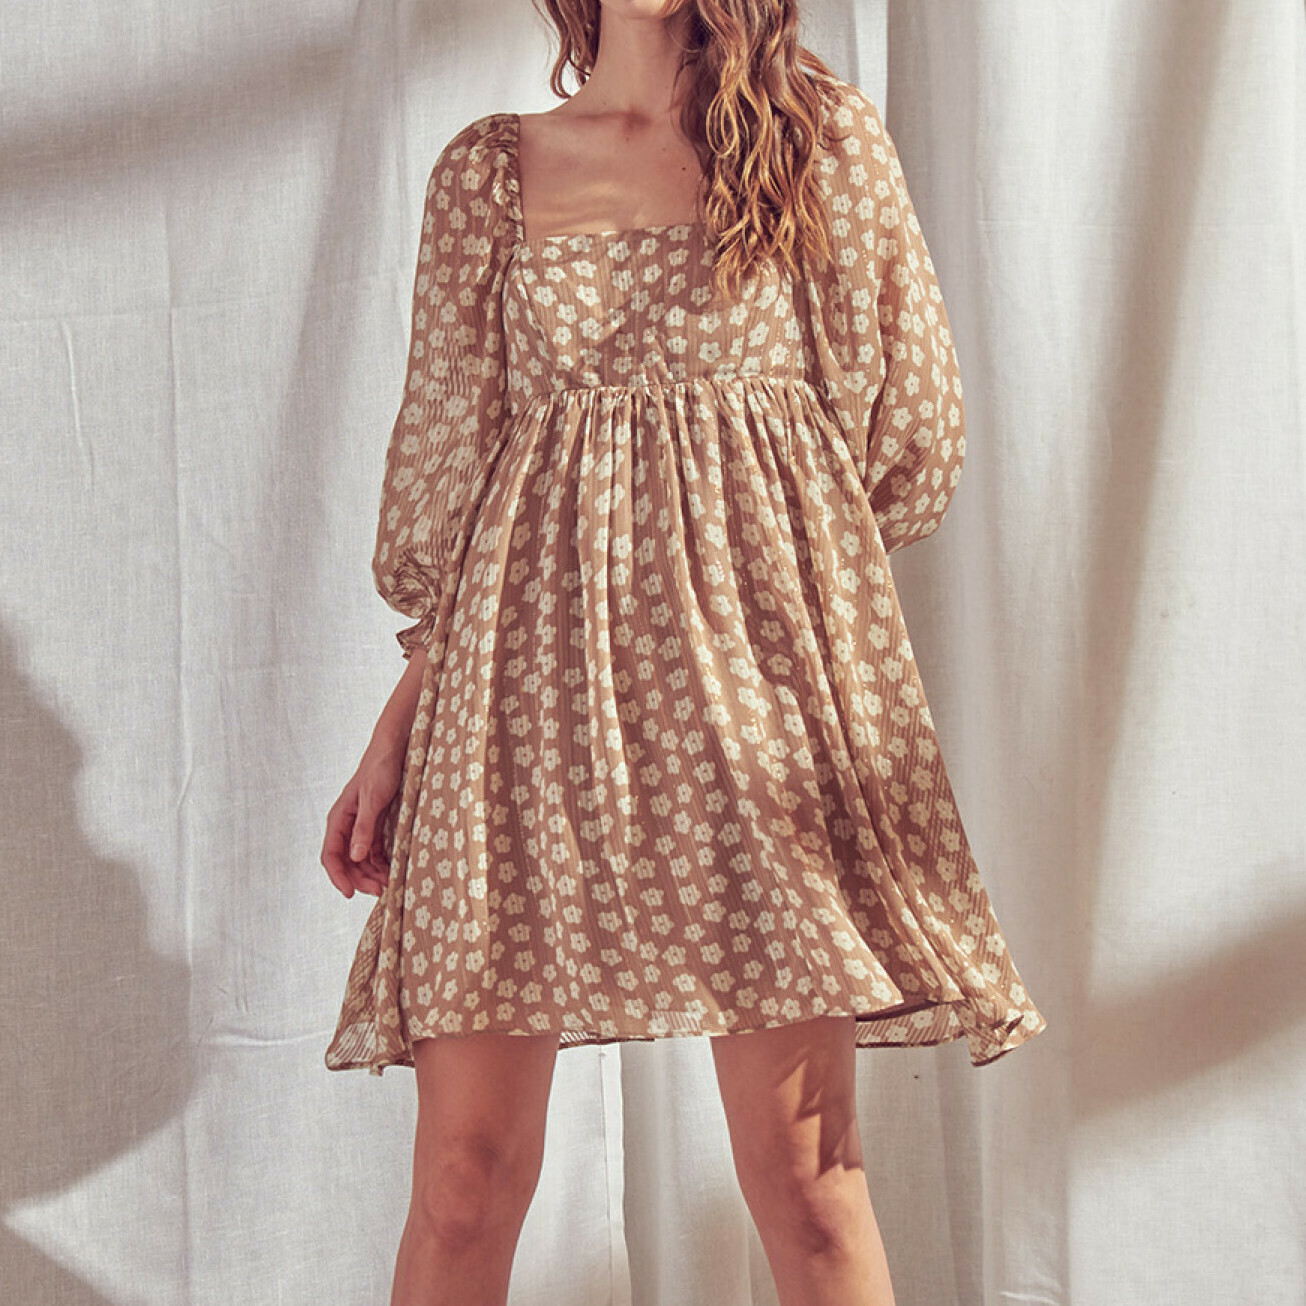 Sand Print Empire Dress - JD2443H